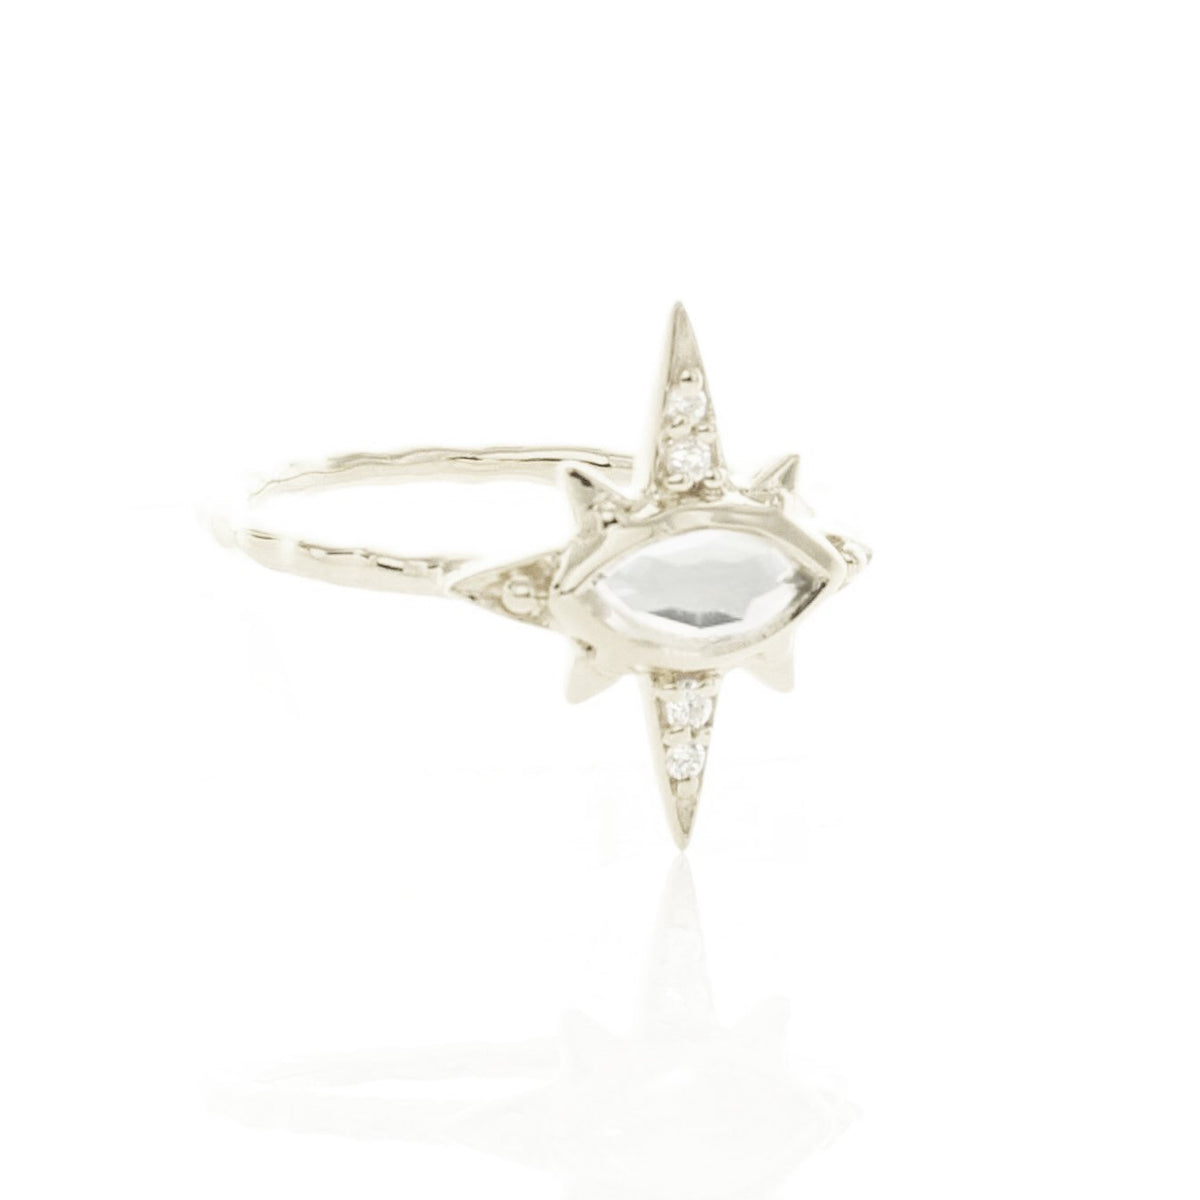 IMAGINE RING - WHITE TOPAZ, CUBIC ZIRCONIA & SILVER - SO PRETTY CARA COTTER